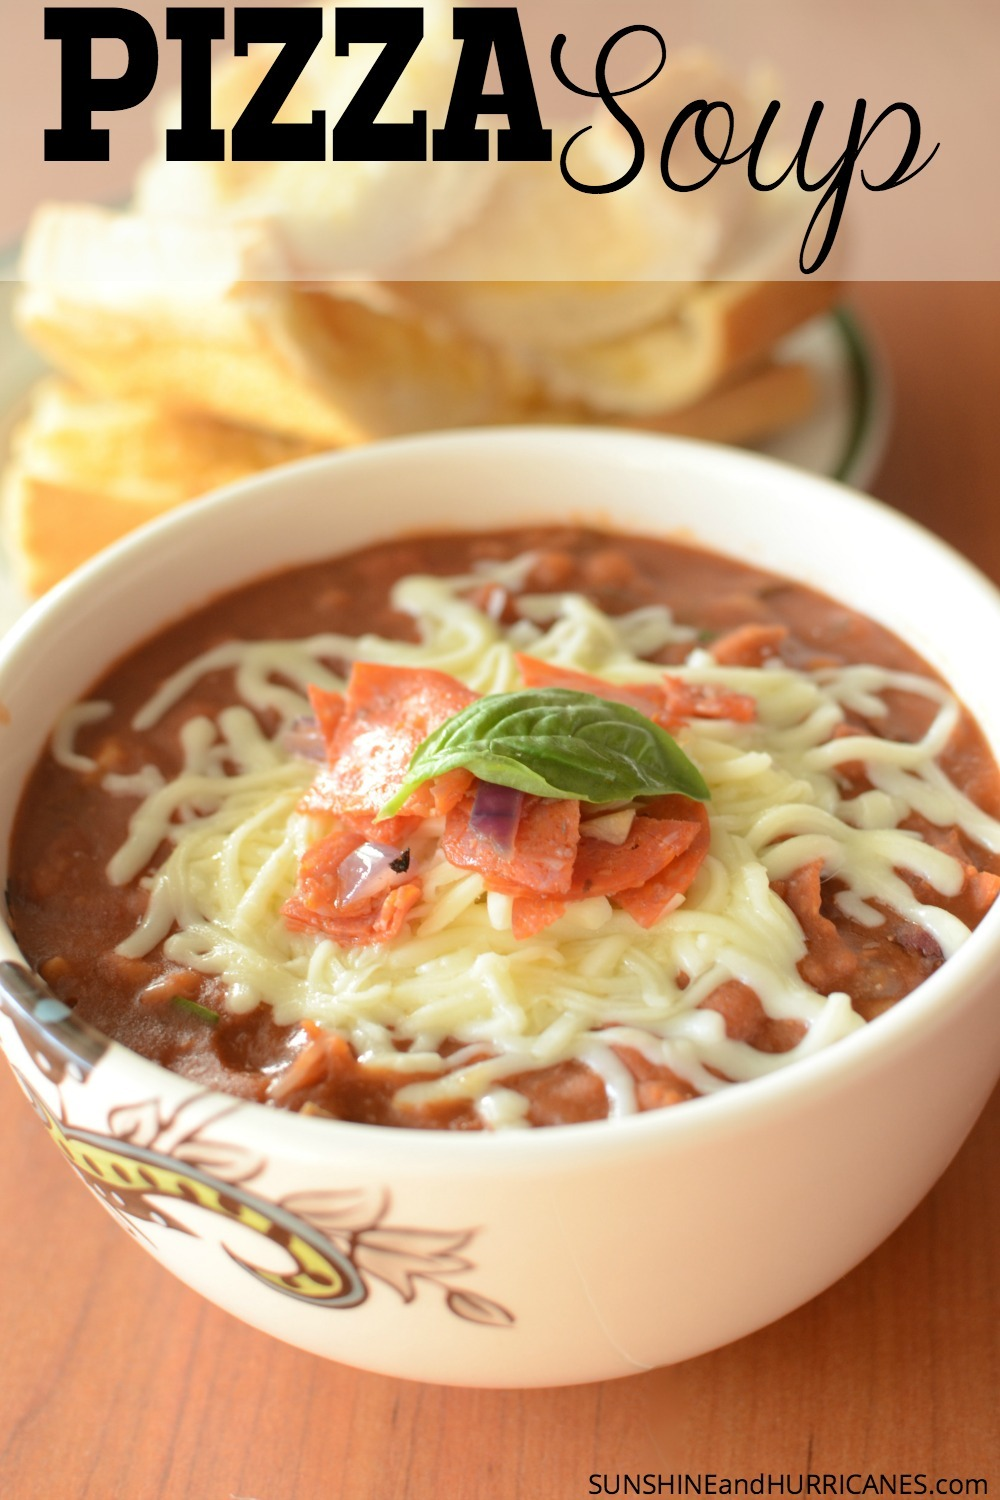 Do your kids love pizza? Then this recipe for pizza soup is sure to be a hit. A fast family dinner that will please even the pickiest of eaters, but with a secret ingredient that makes it healthier and makes mom happy. Pizza Soup. SunshineandHurricanes.com